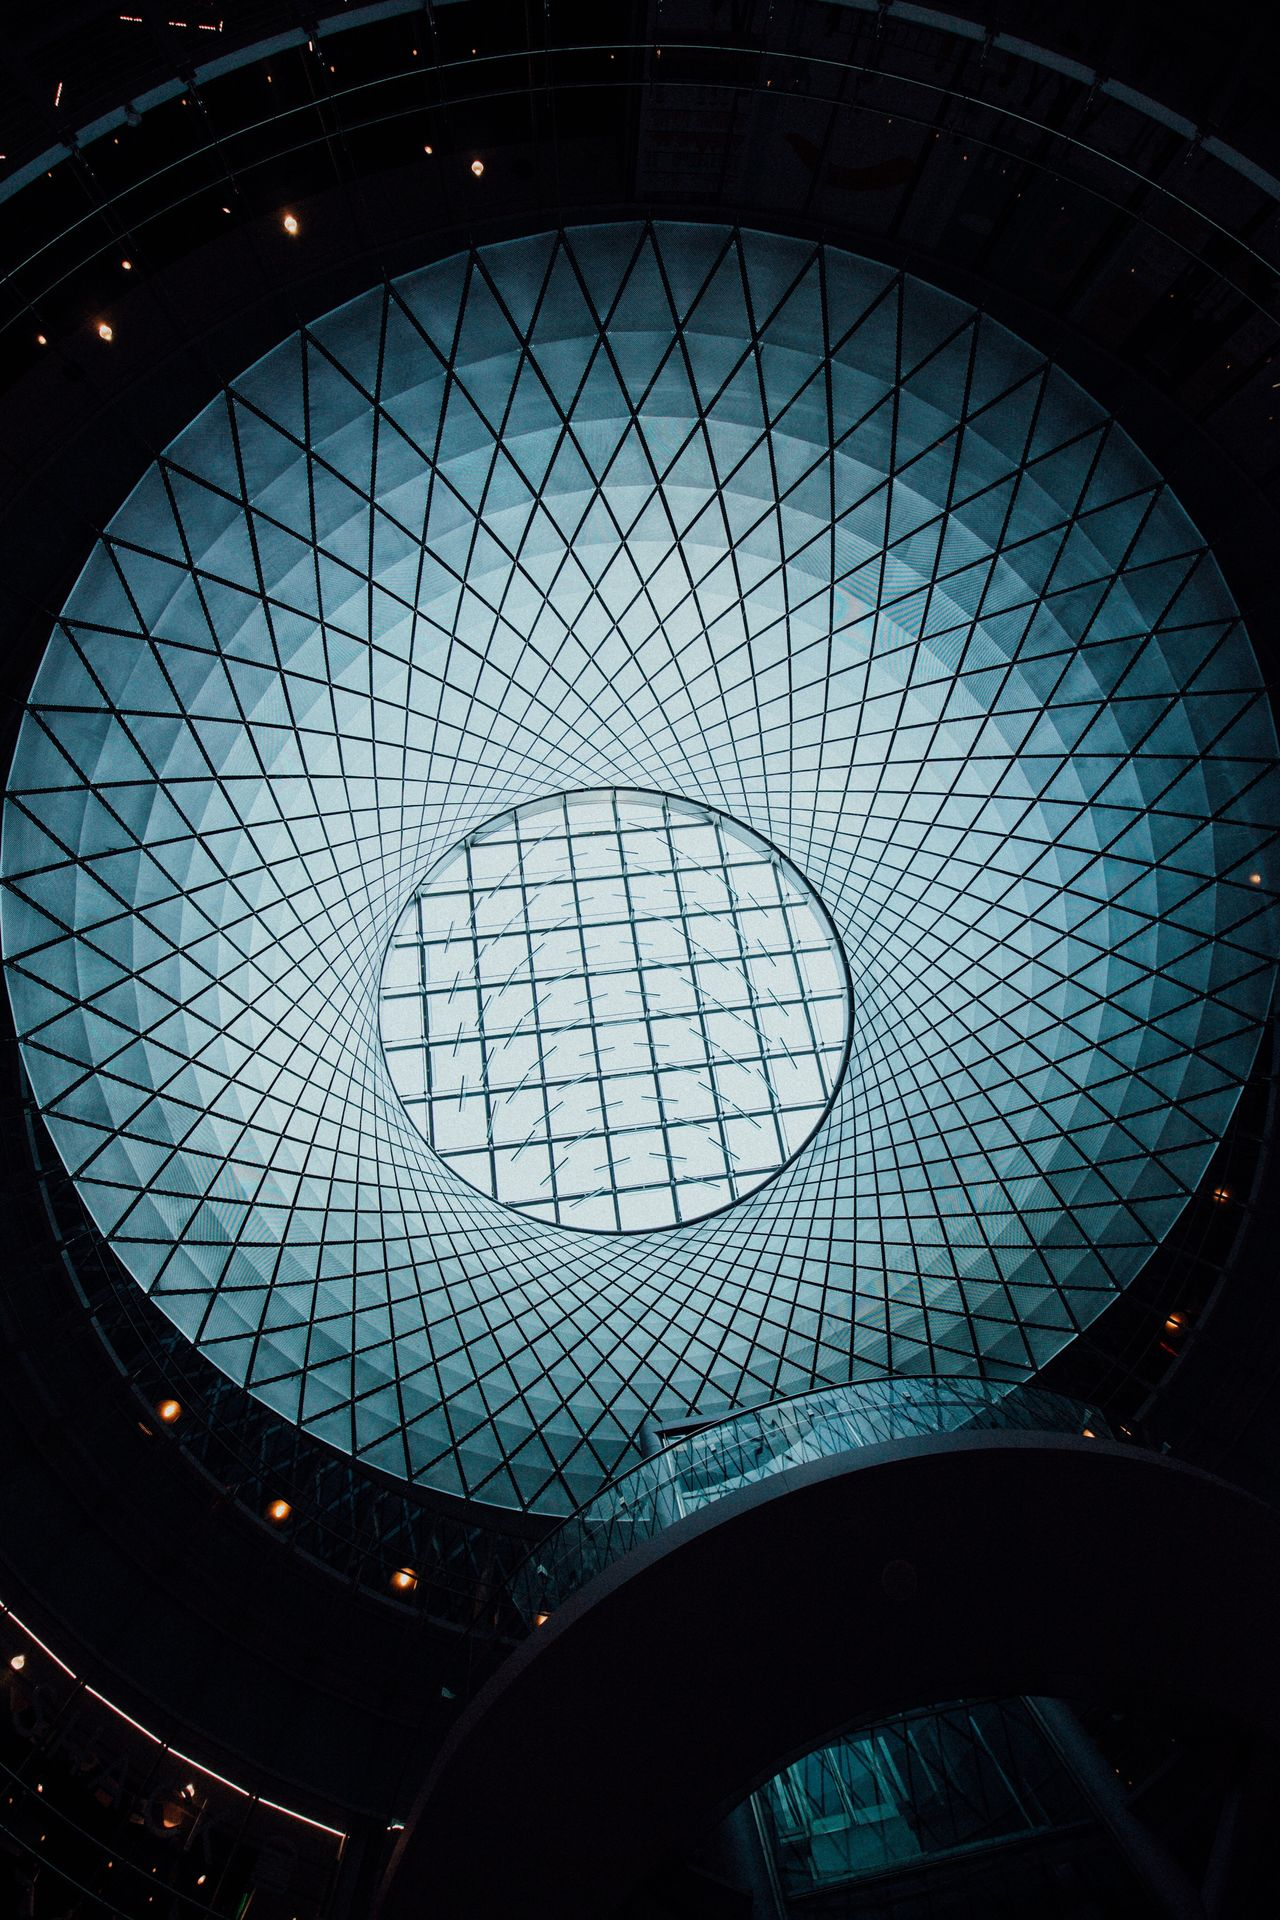 Low Angle View Architecture Built Structure Modern Indoors  Ceiling No People Pattern Building Exterior City Day Skyscraper Architectural Design Illuminated Close-up Science Fiction Architecture Fulton Subwaystation